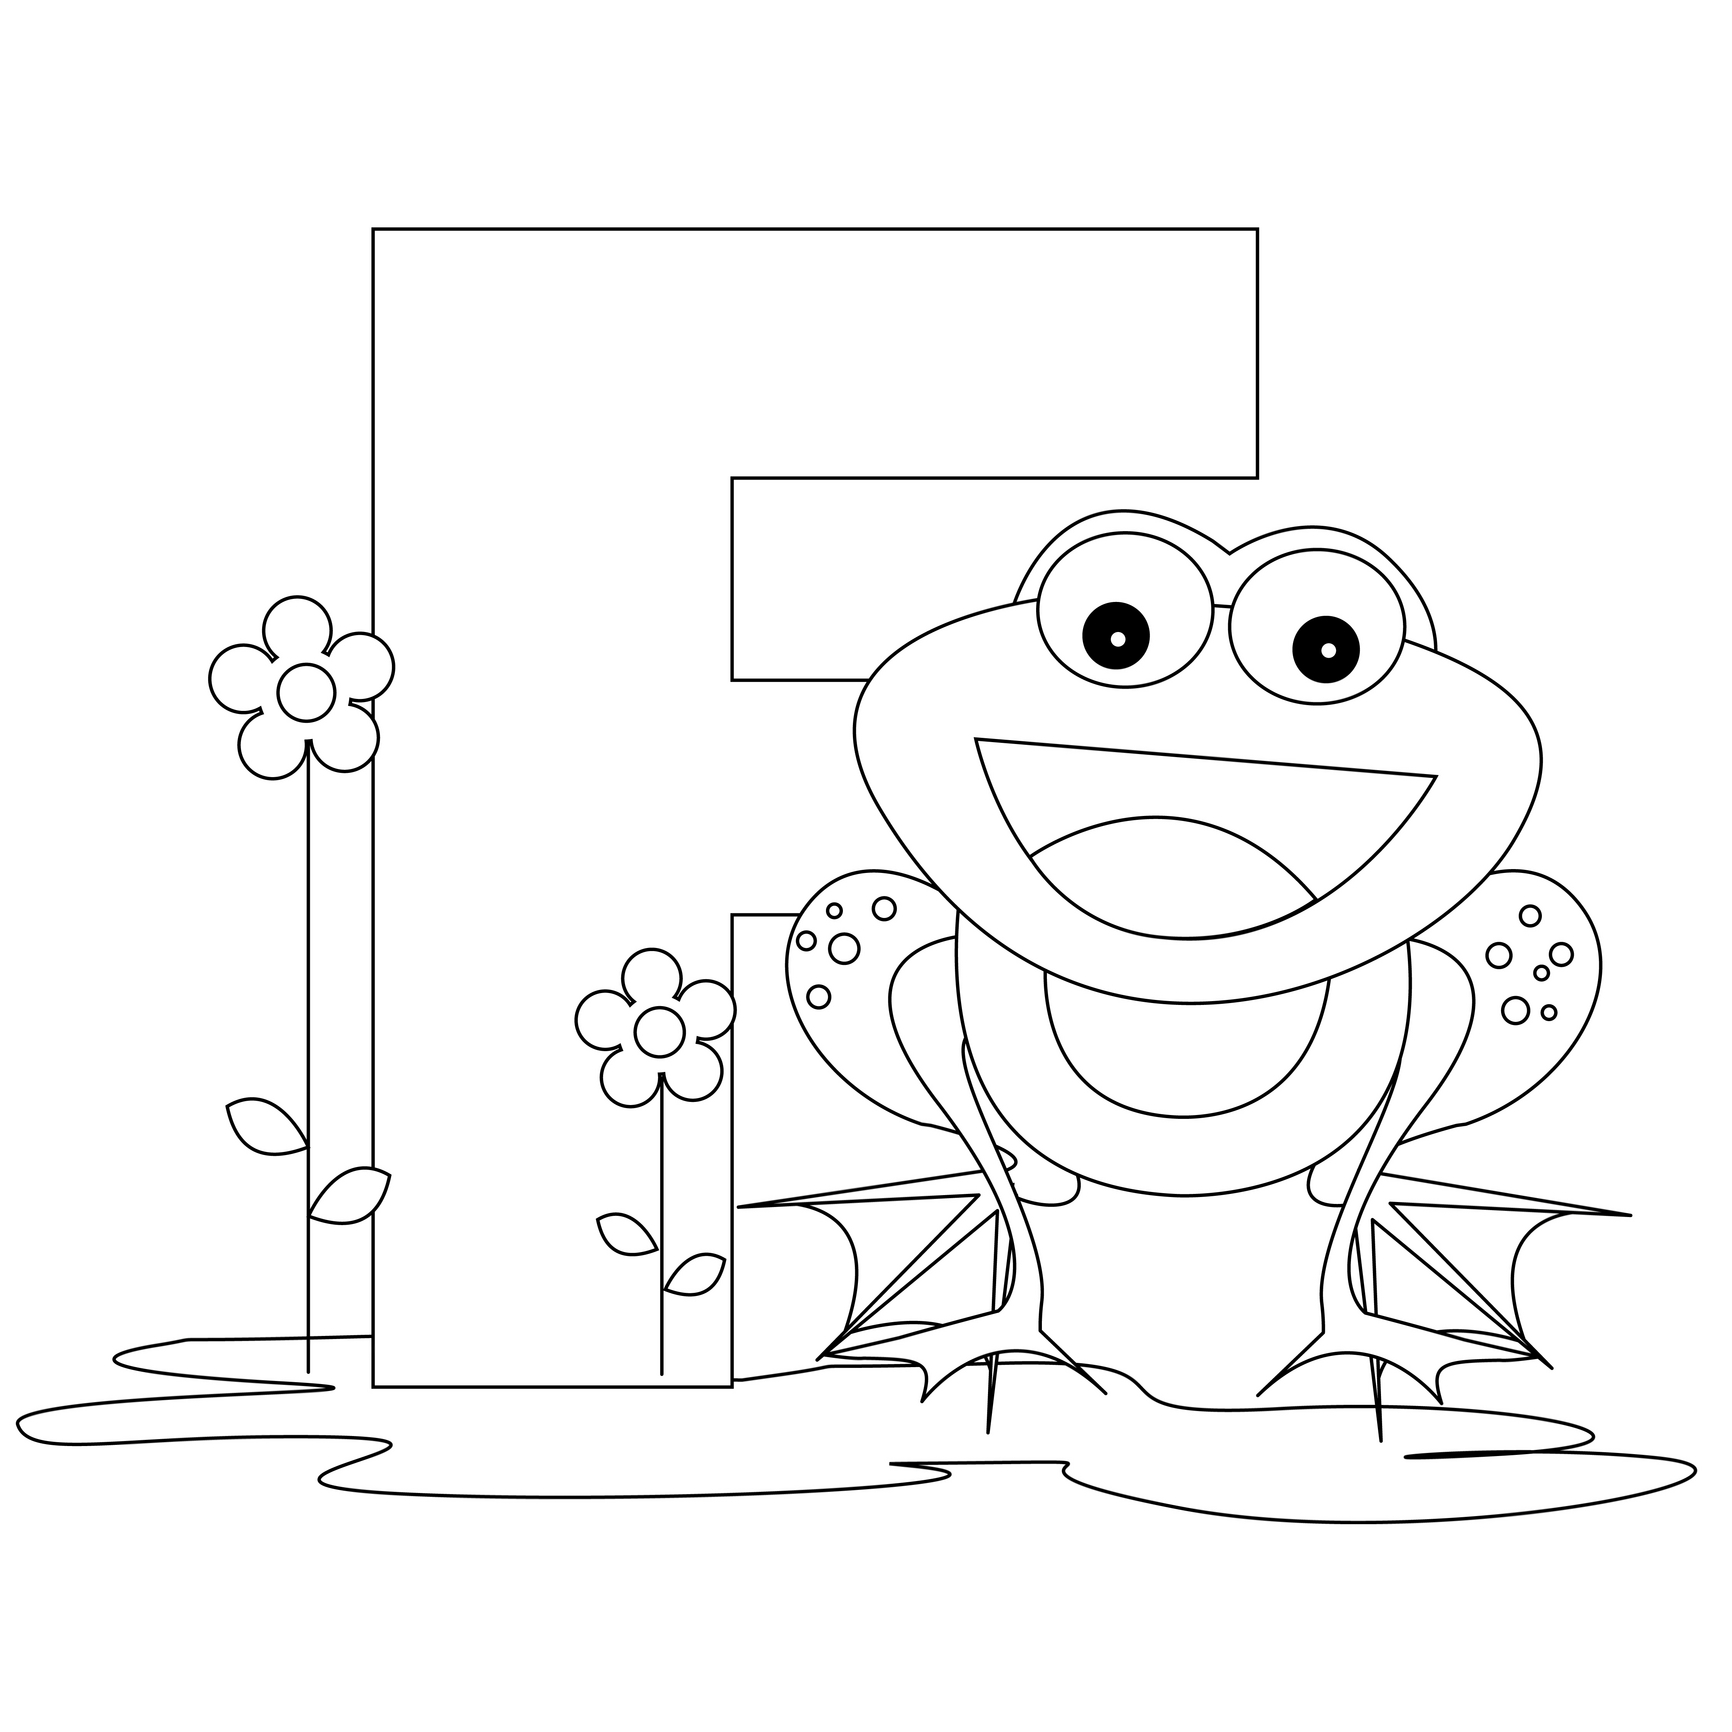 Letter f coloring pages to download and print for free Coloring book kindergarten